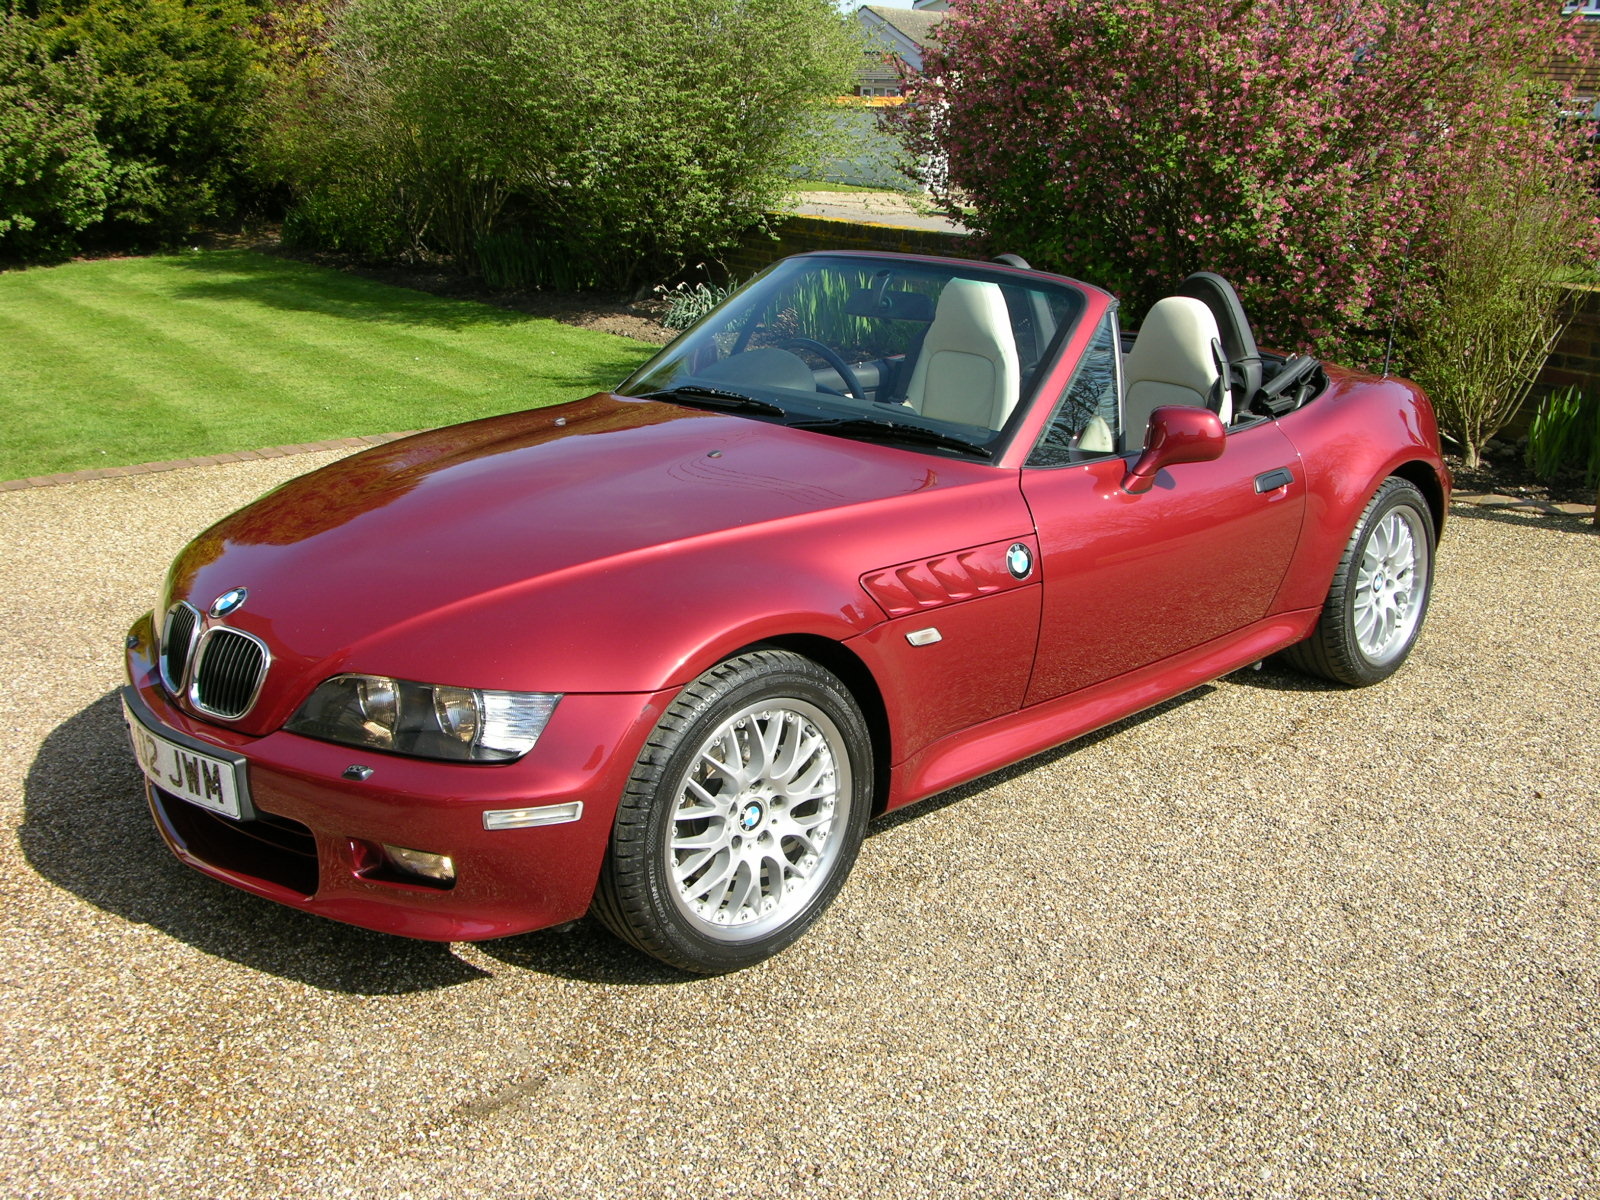 File Bmw Z3 3 0i Calypso Red 2002 Flickr The Car Spy 17 Jpg Wikimedia Commons